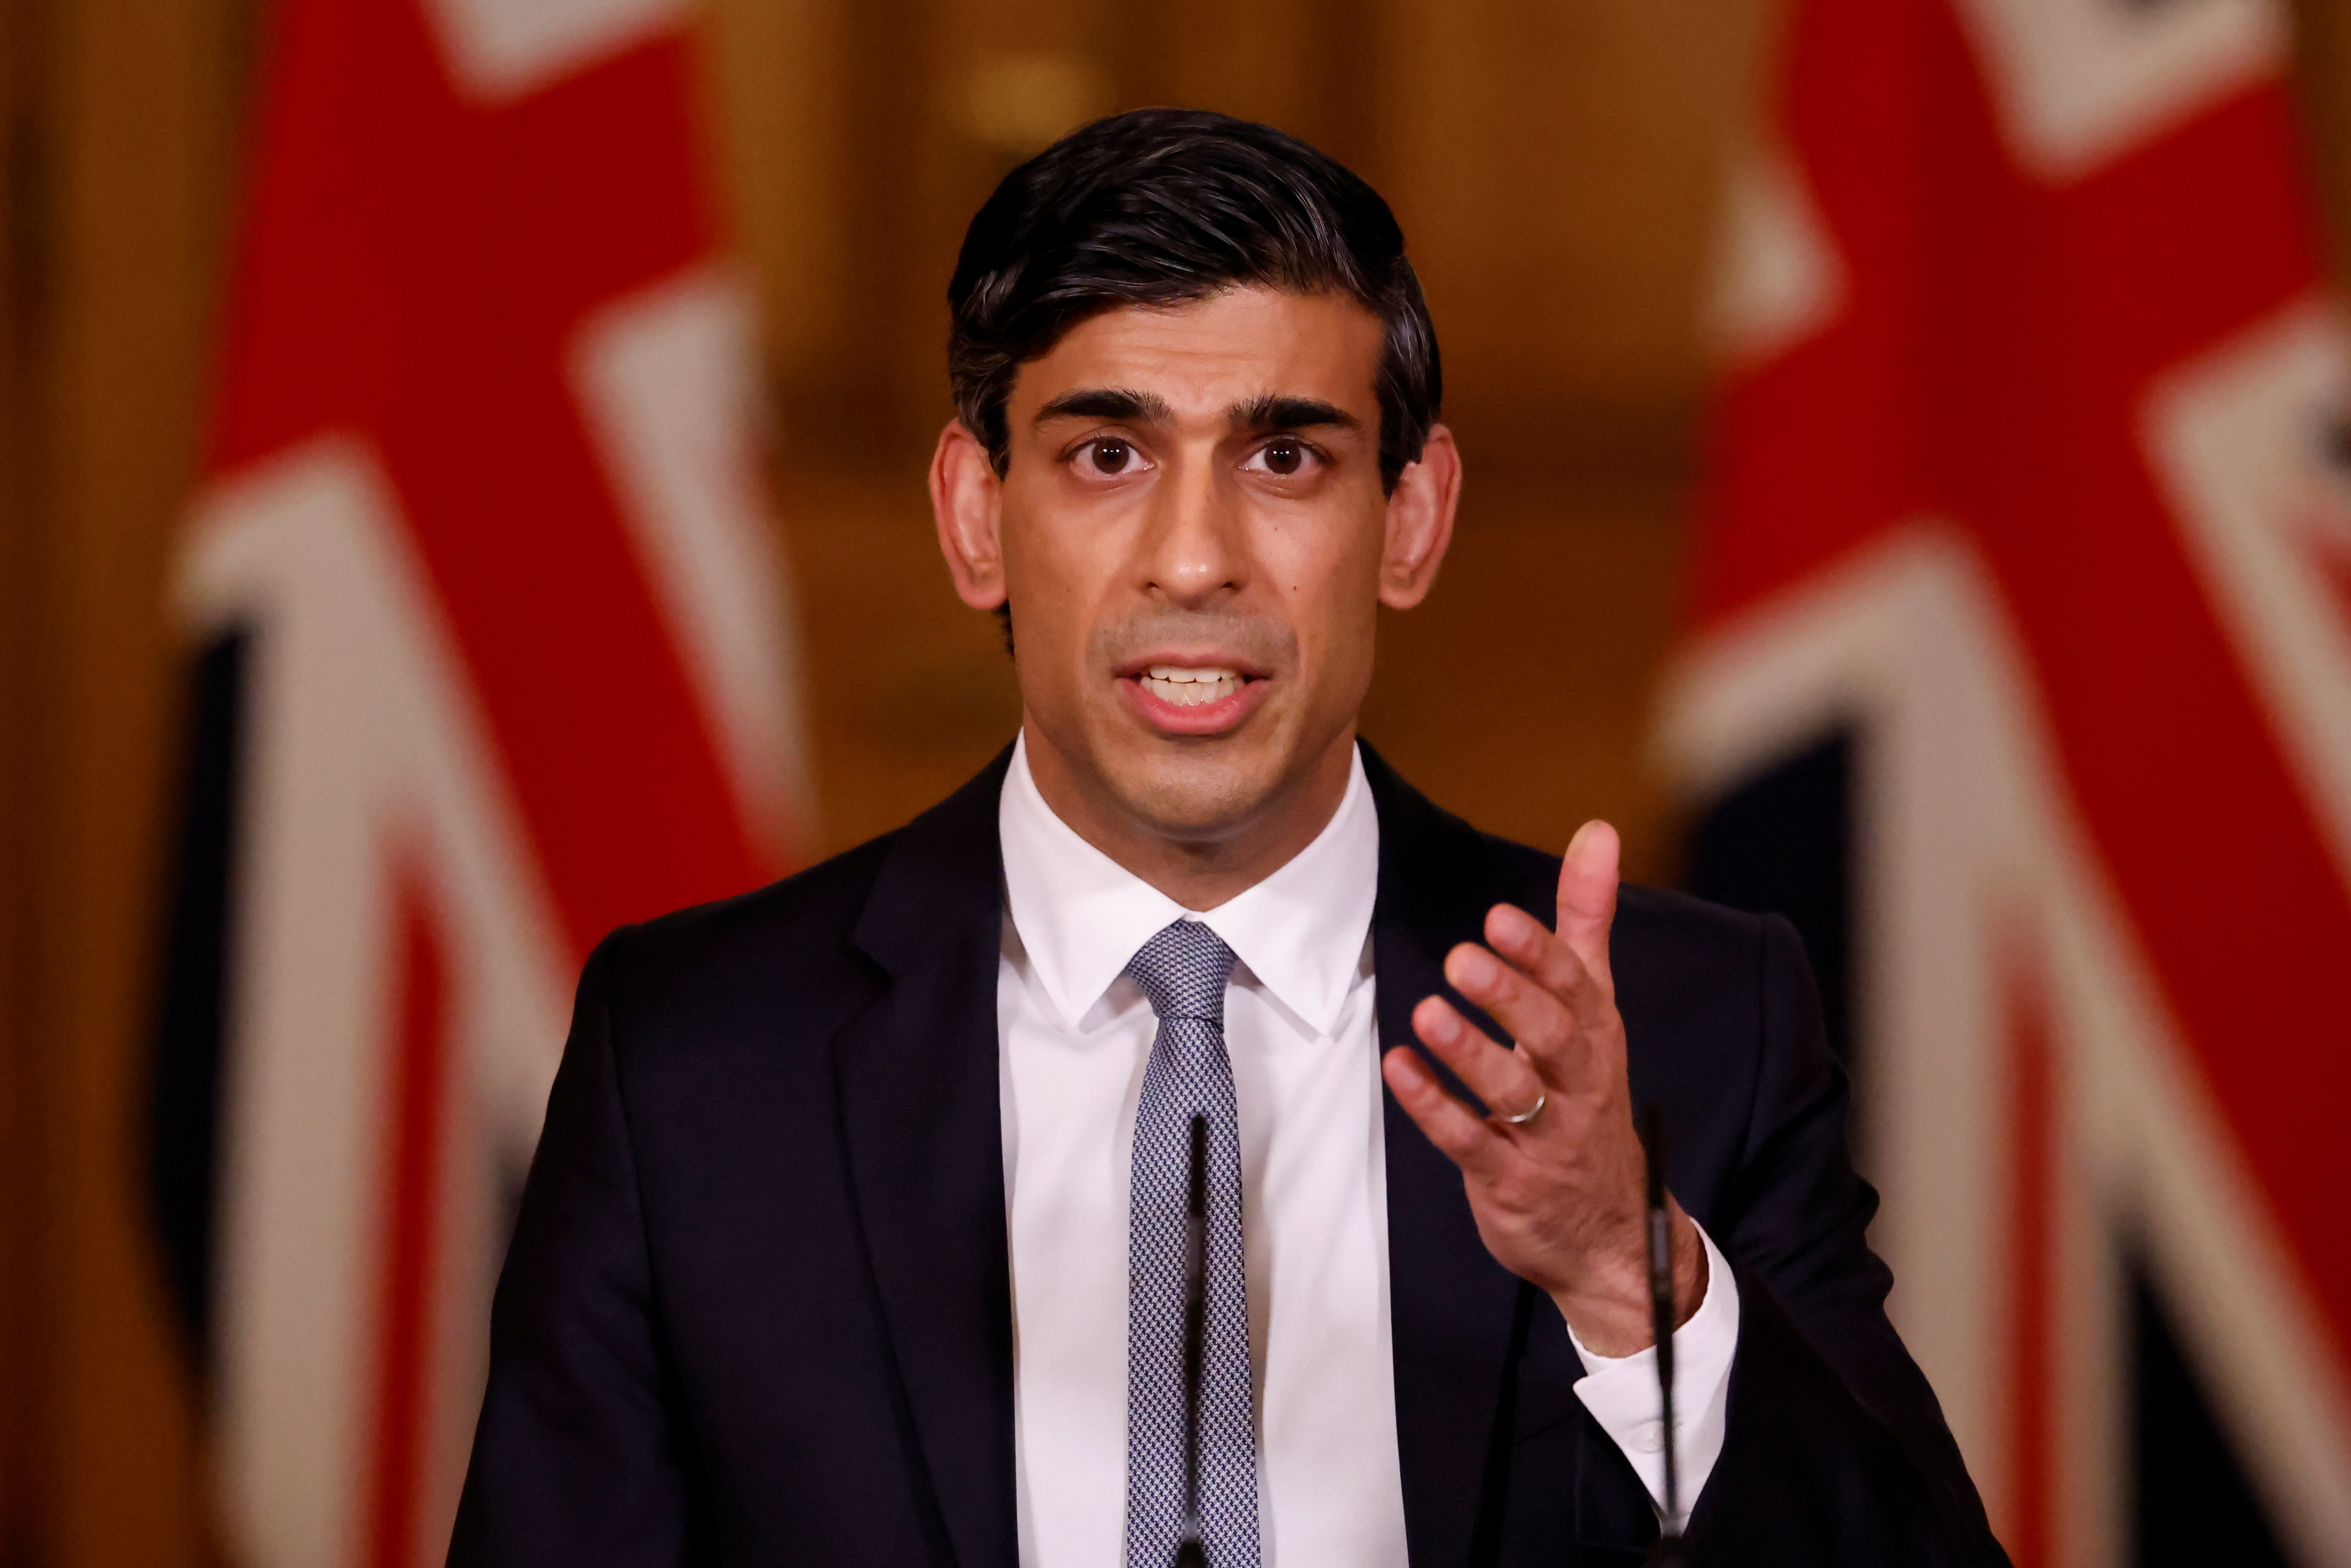 Britain's Chancellor of the Exchequer Rishi Sunak attends a virtual press conference inside 10 Downing Street in central London, Britain March 3, 2021. Tolga Akmen/Pool via REUTERS